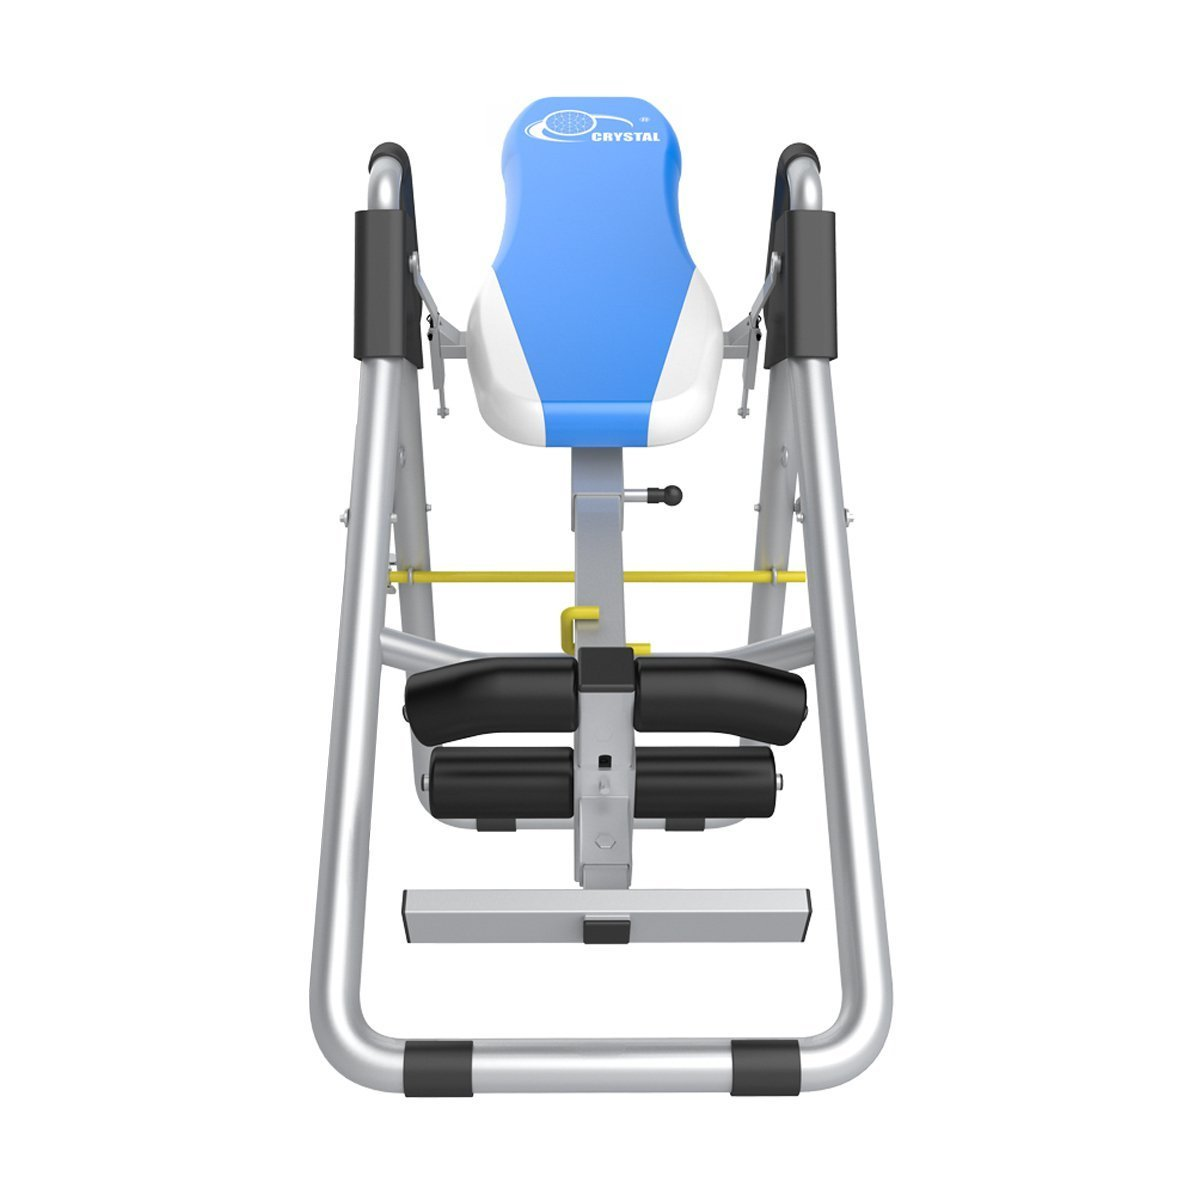 Inversion Therapy Tables for Back Pain Adjustable Therapy Table Foldable Fitness Equipment Back Pain Relief Gravity Inversion Tables for Home Use Sports Equipment-Blue by Bestpet Store